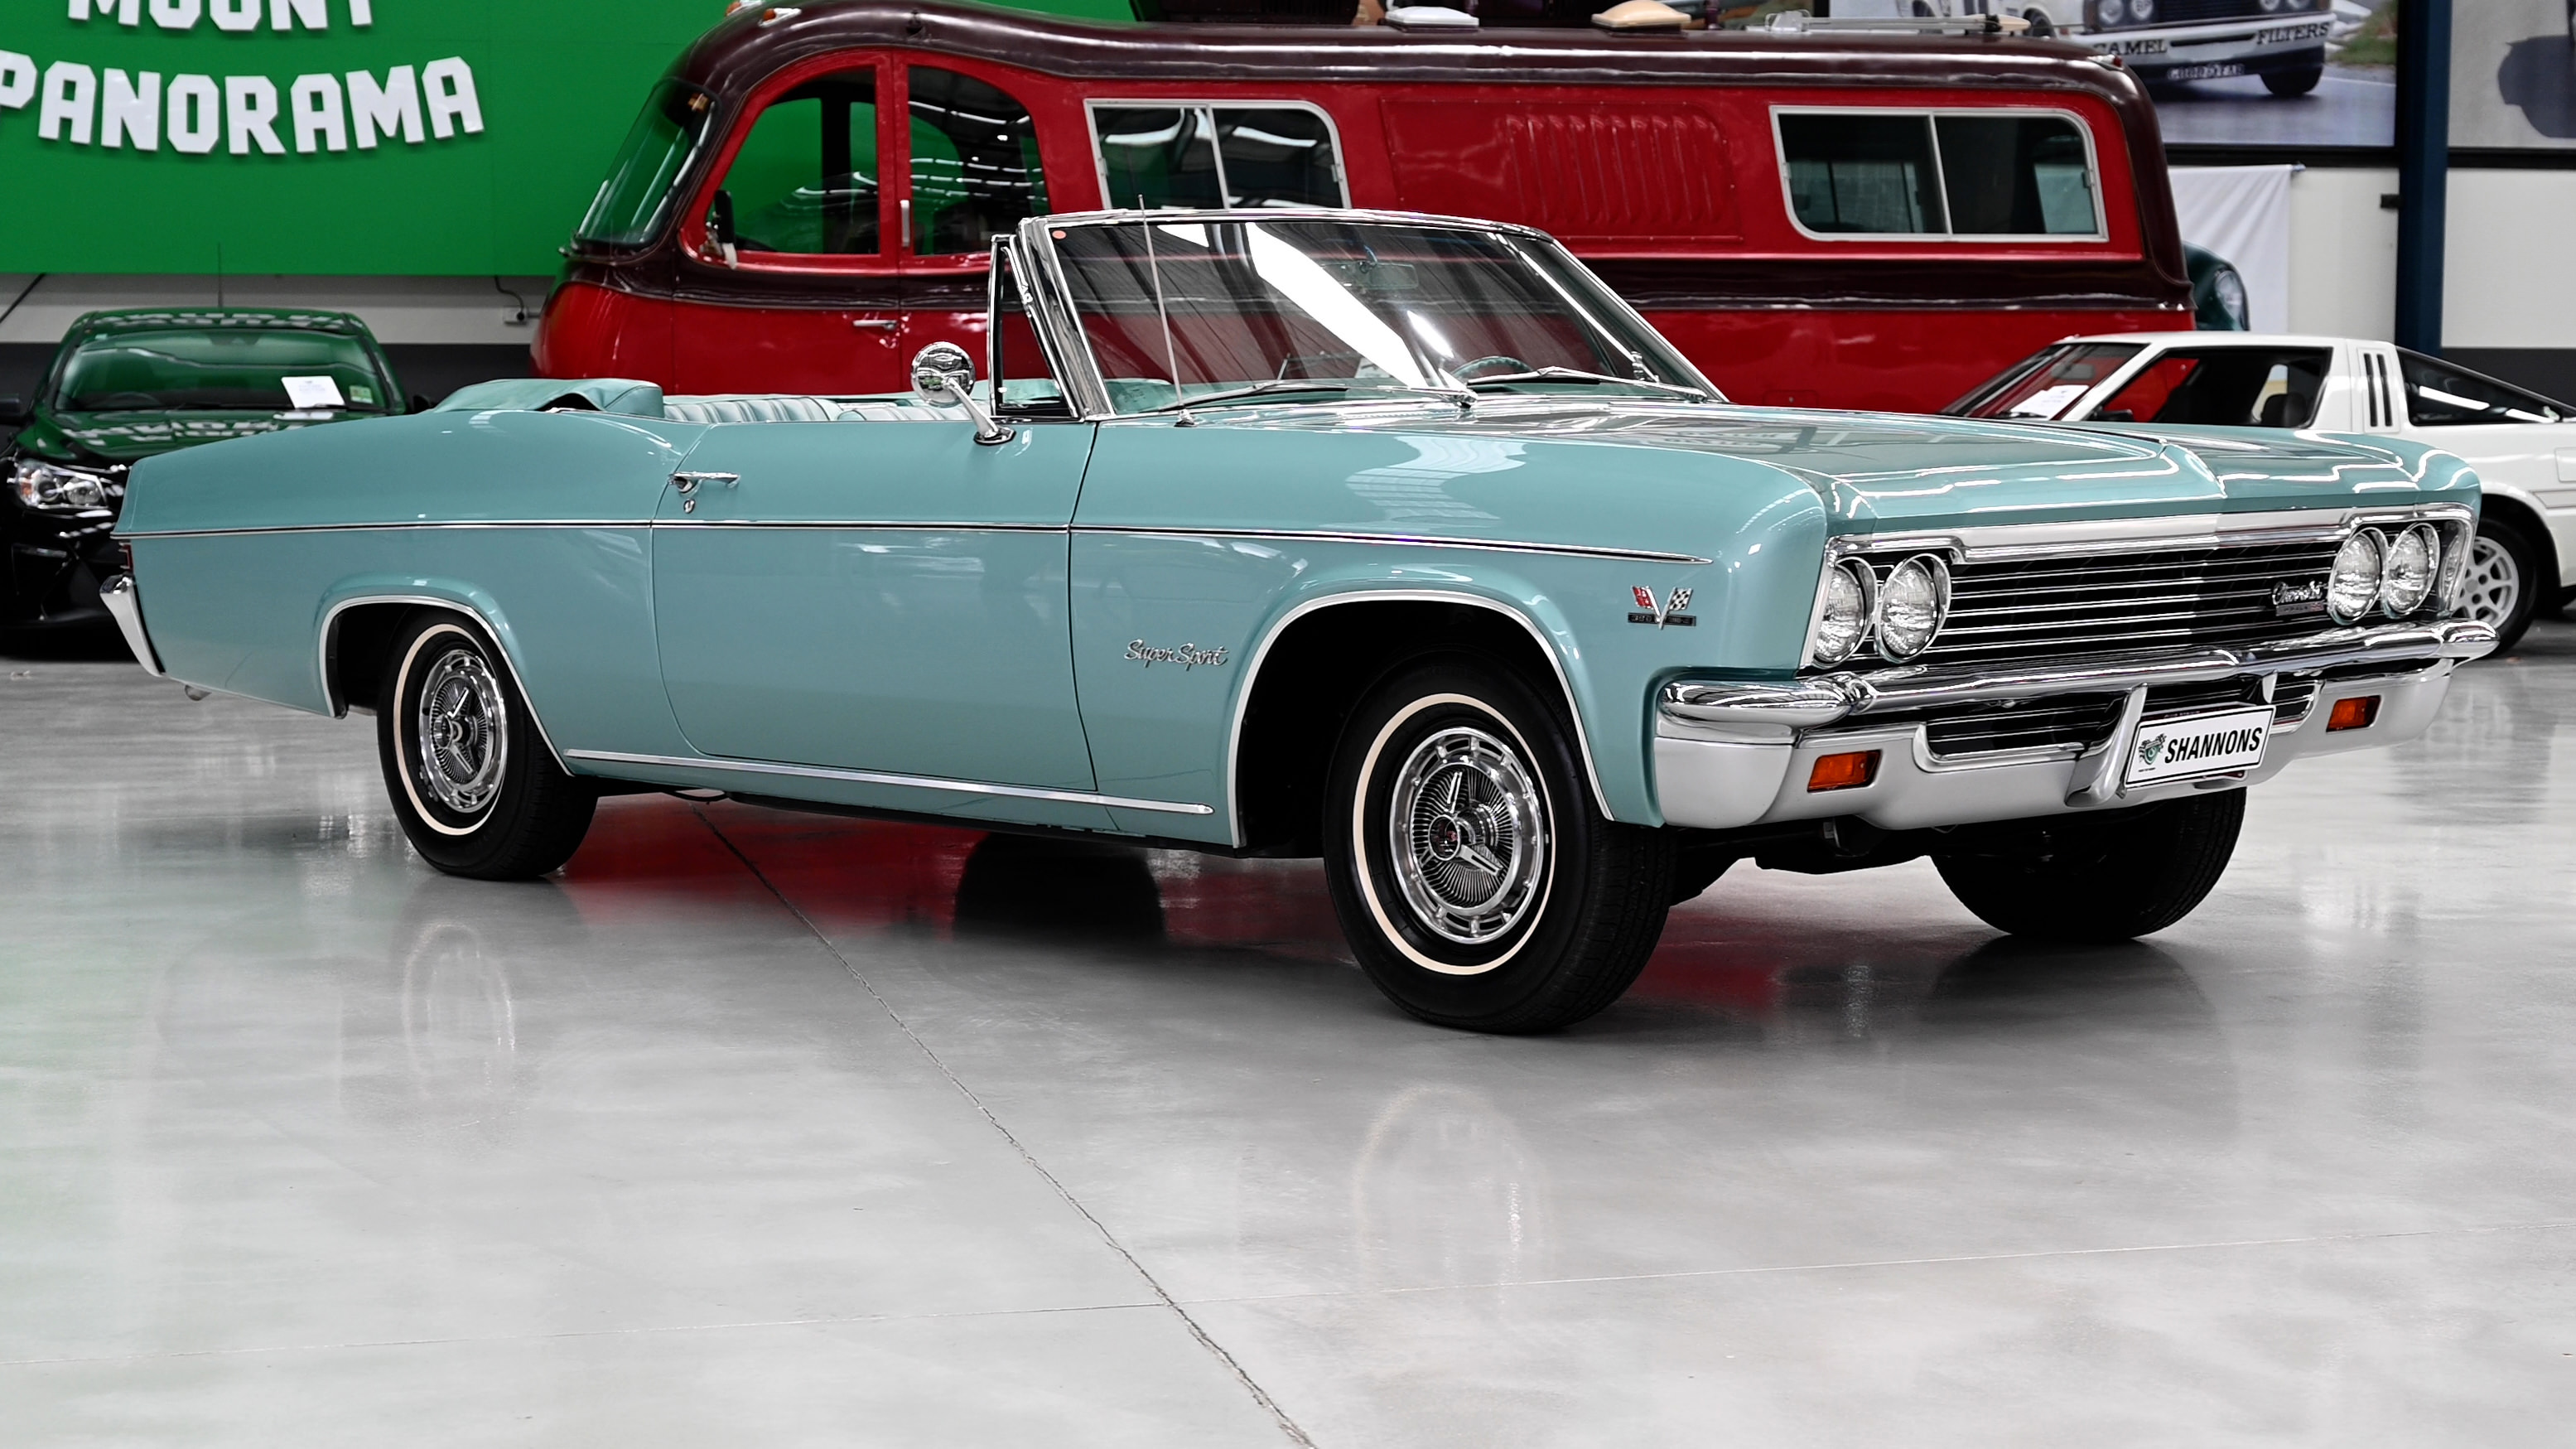 1966 Chevrolet Impala SS 396 Convertible (LHD) - 2021 Shannons Autumn Timed Online Auction